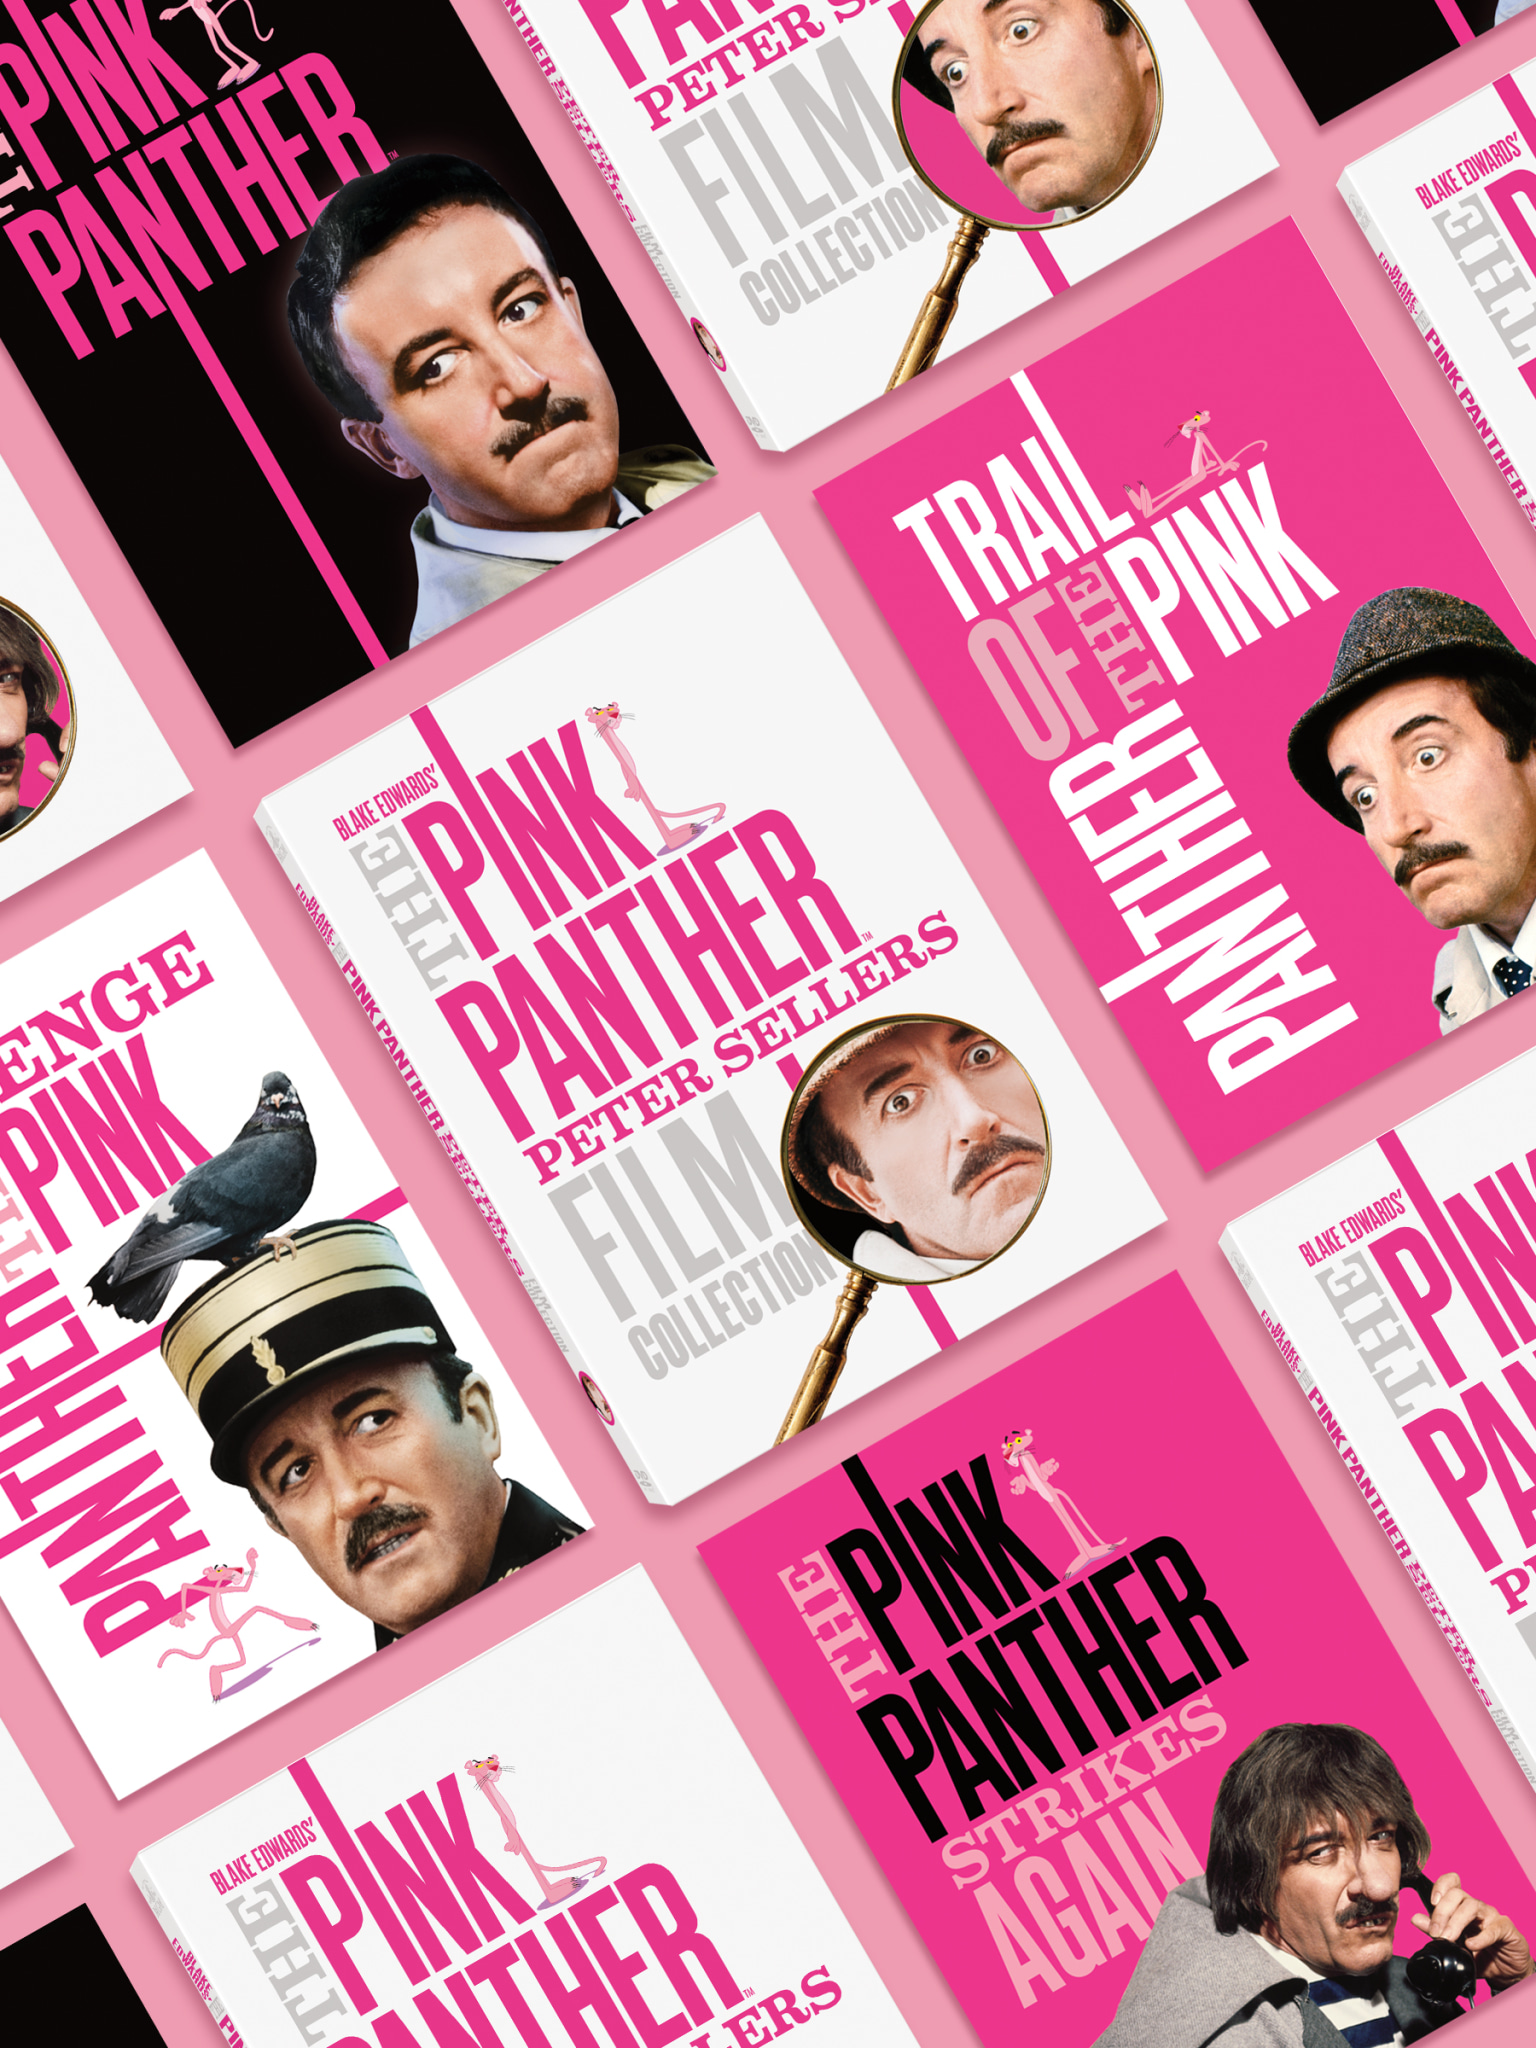 The Pink Panther Peter Sellers Film Collection